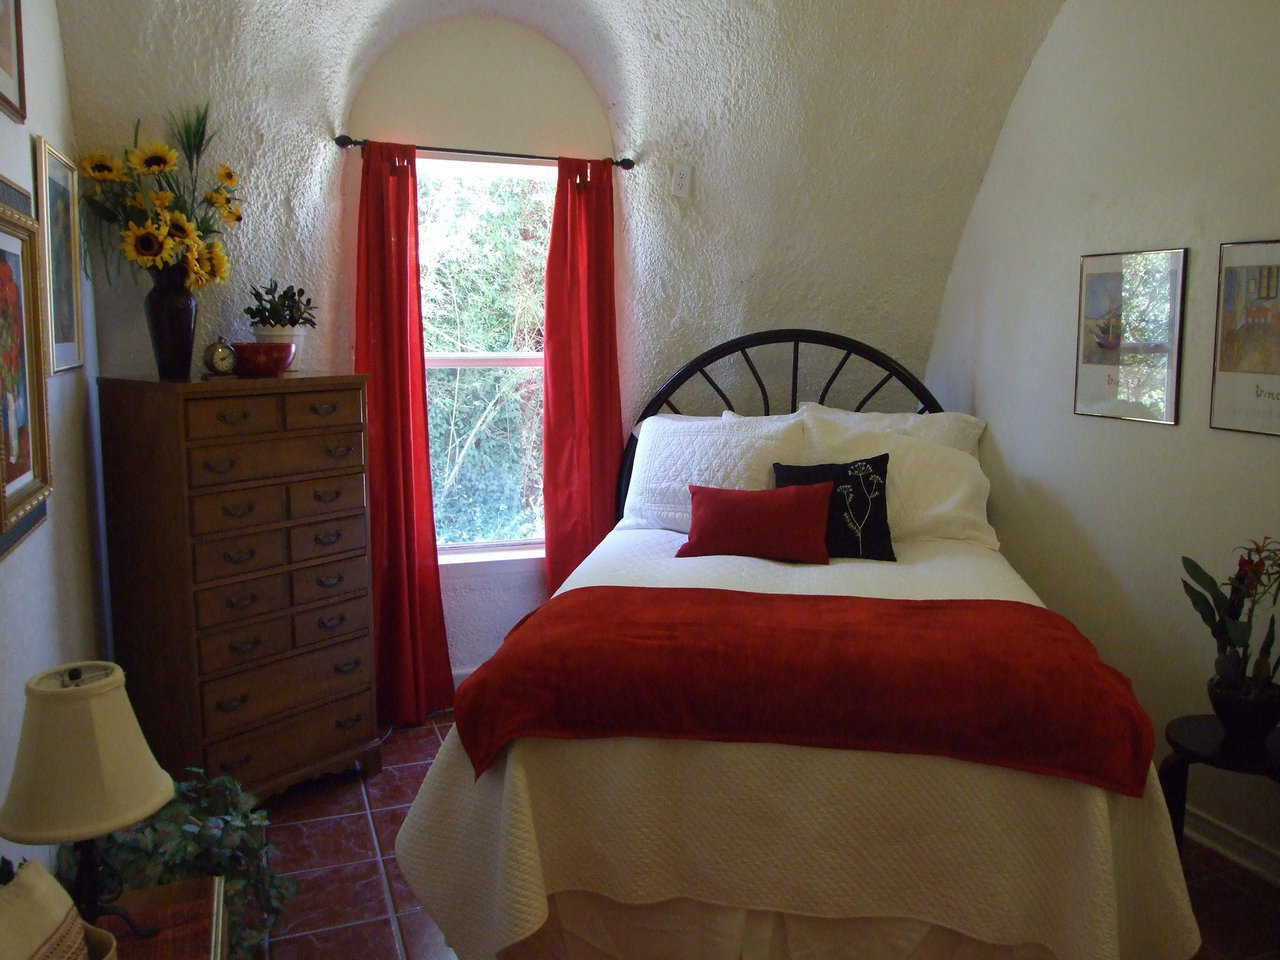 Bedroom 3 — Charca Casa has three bedrooms plus a guest room.